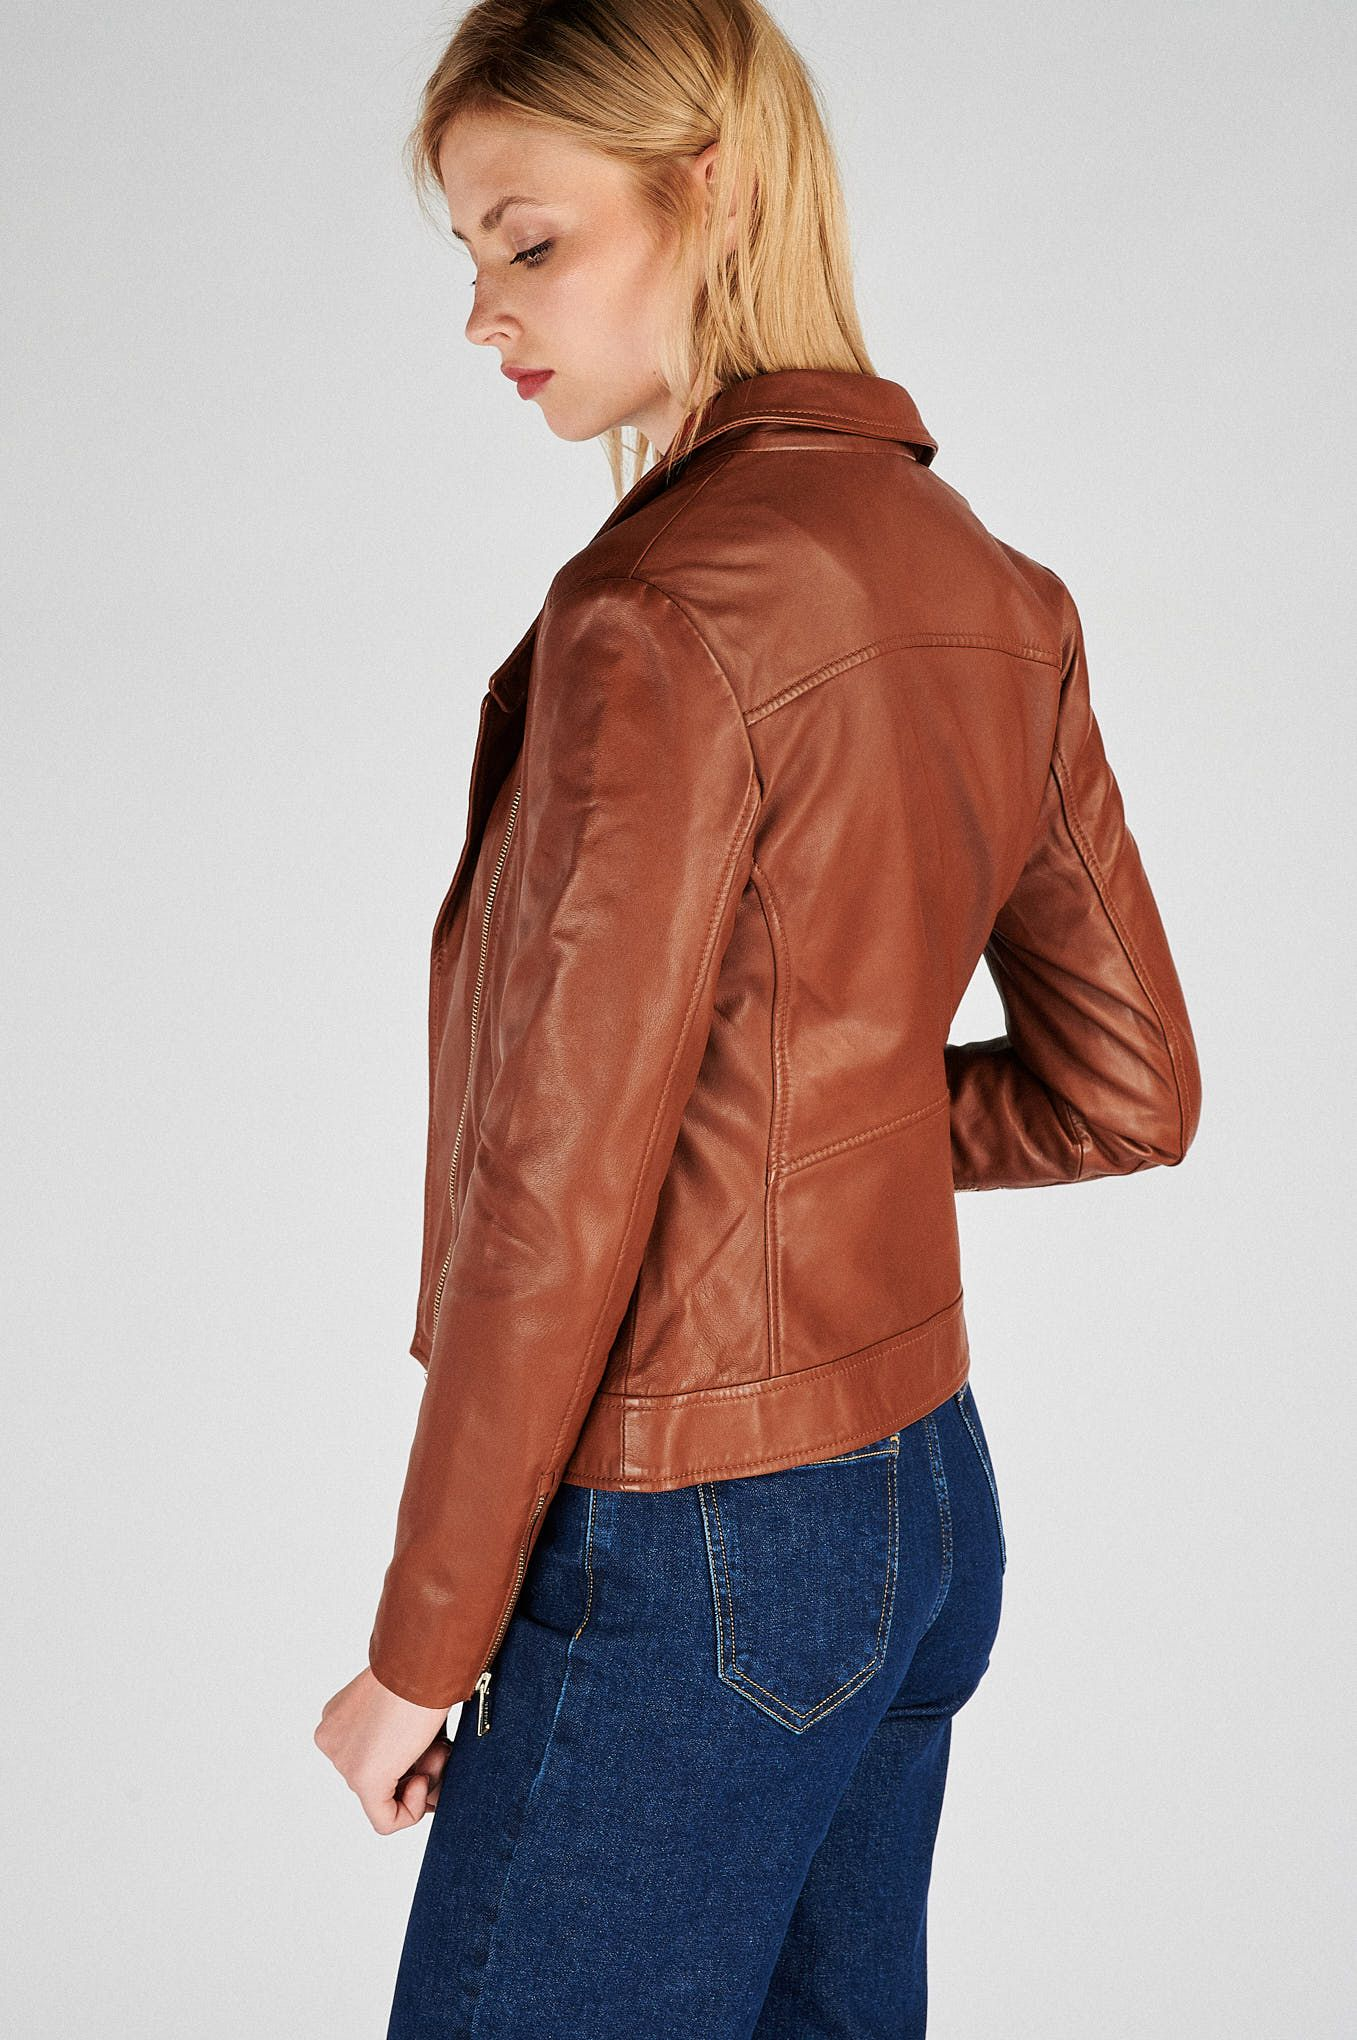 Women s Genuine Leather Casual Jacket